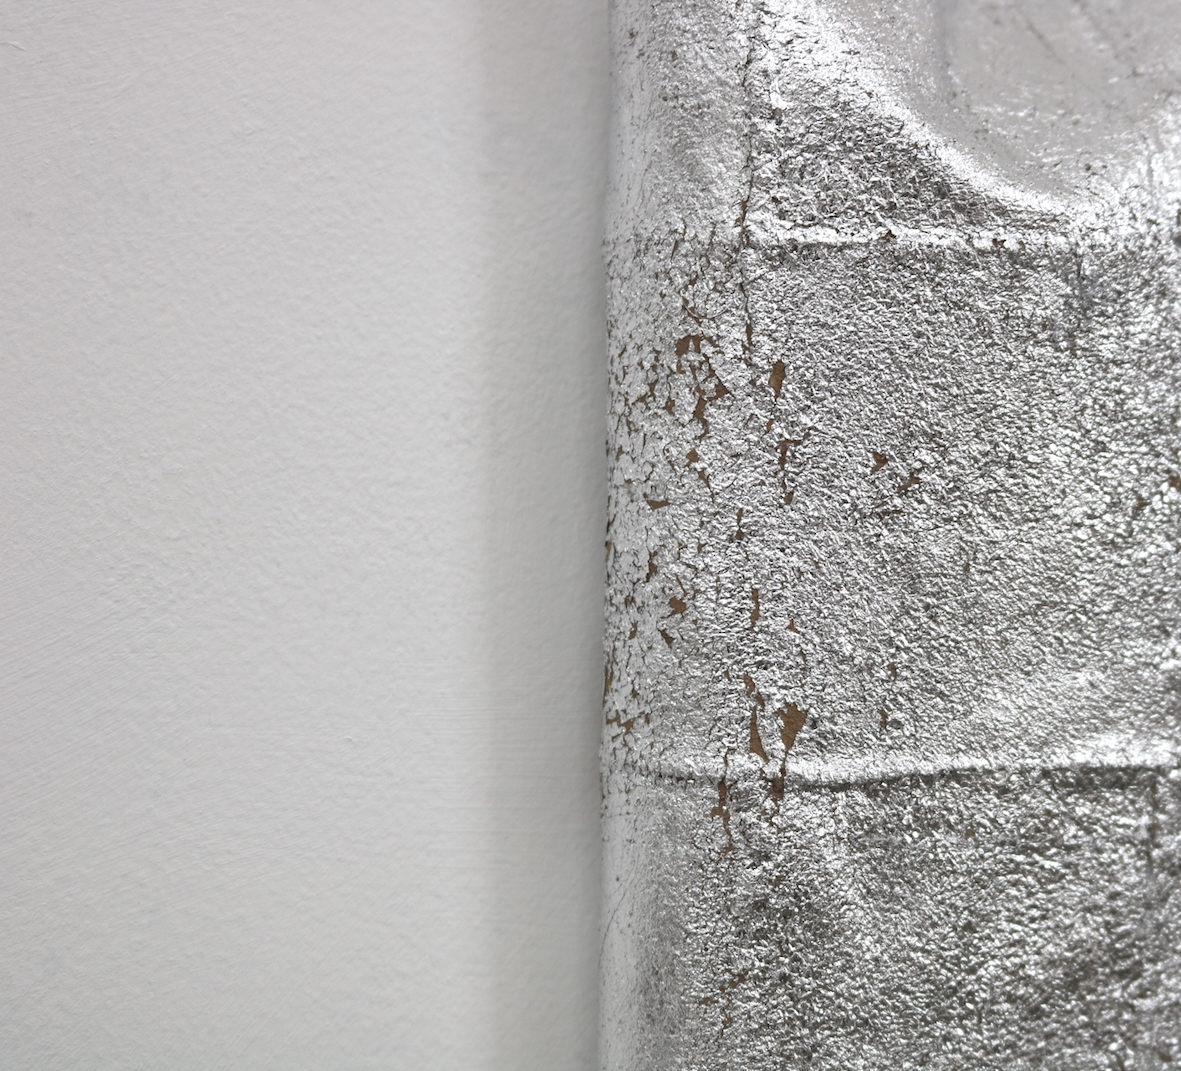 Patch (detail) | Charlie Franklin, 2018 | aluminium leaf, oil, leather, wooden support | 32cm x 18cm x 3cm | image: courtesy of the artist